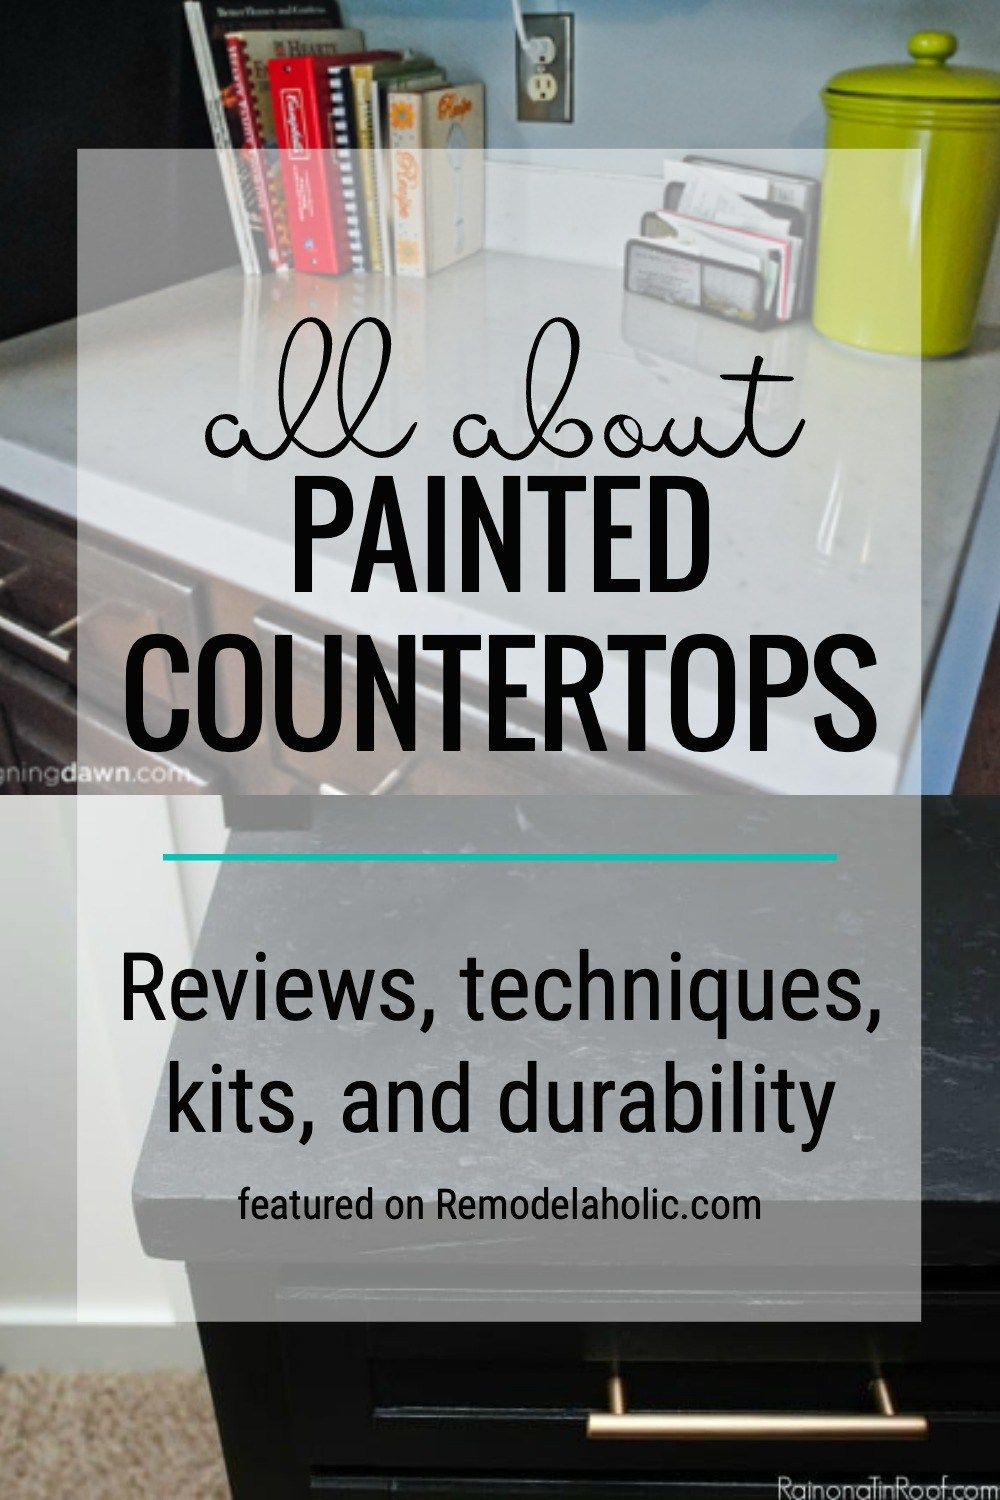 Diy Painted Countertops And Reviews In 2020 Painting Countertops Painted Countertops Diy Remodelaholic Diy